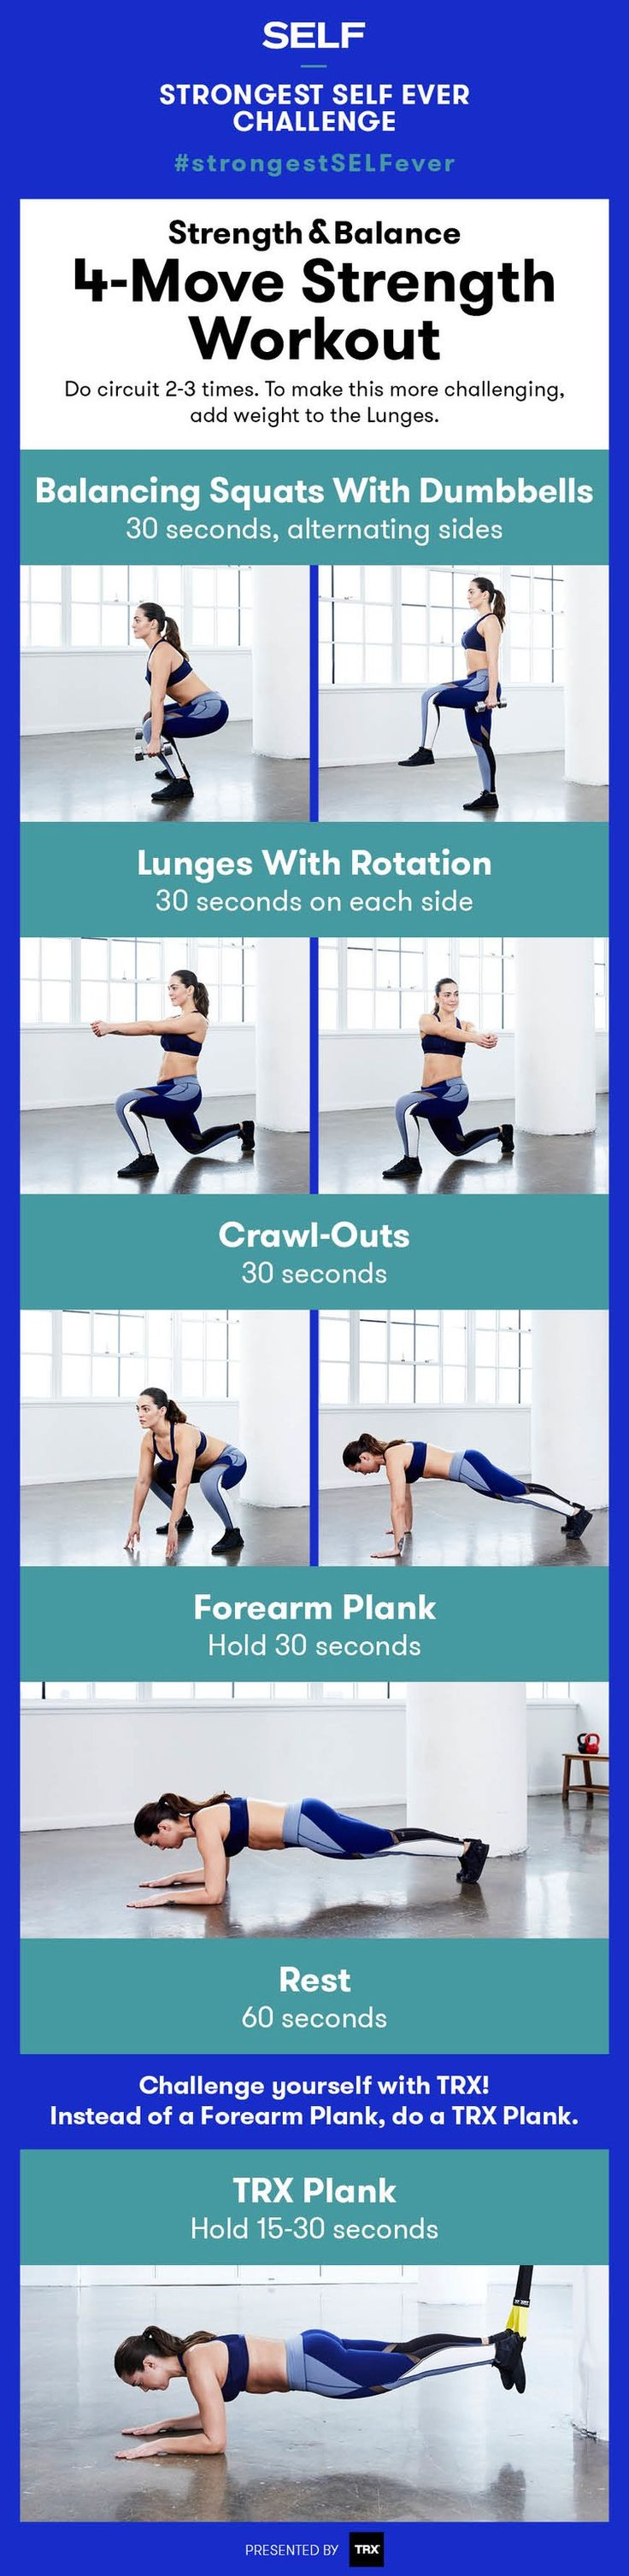 This total-body workout was created just for the Strongest SELF Ever Challenge. These 4 heart-pumping moves will challenge your strength and balance. You'll move from exercise to exercise, resting as little as possible between moves. Looking to really challenge yourself? Count your number of reps during the first round, then try to do more reps of each exercise during the second round.